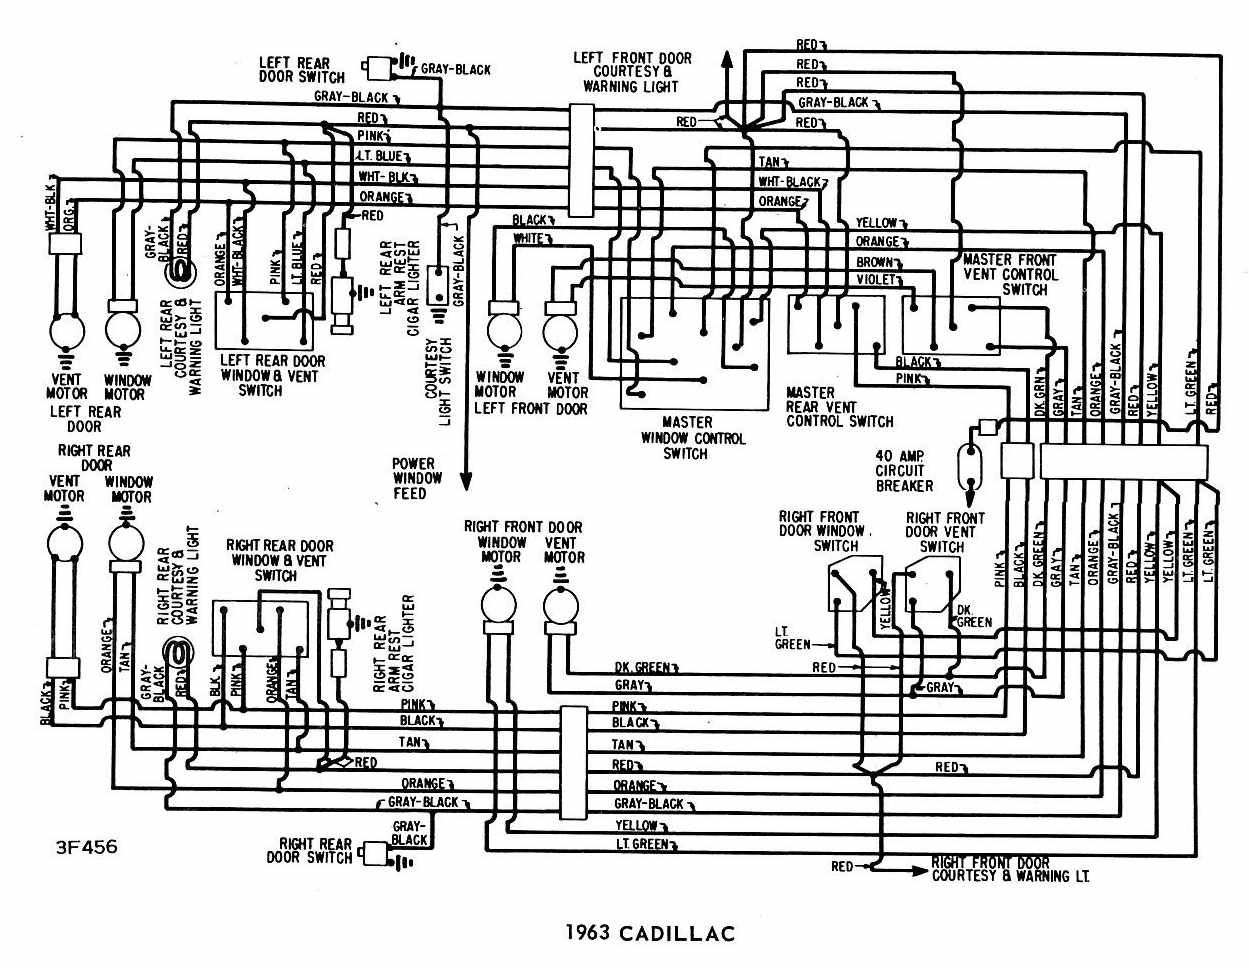 keystone cougar wiring diagrams driving lights diagram hilux electrical schematic get free image